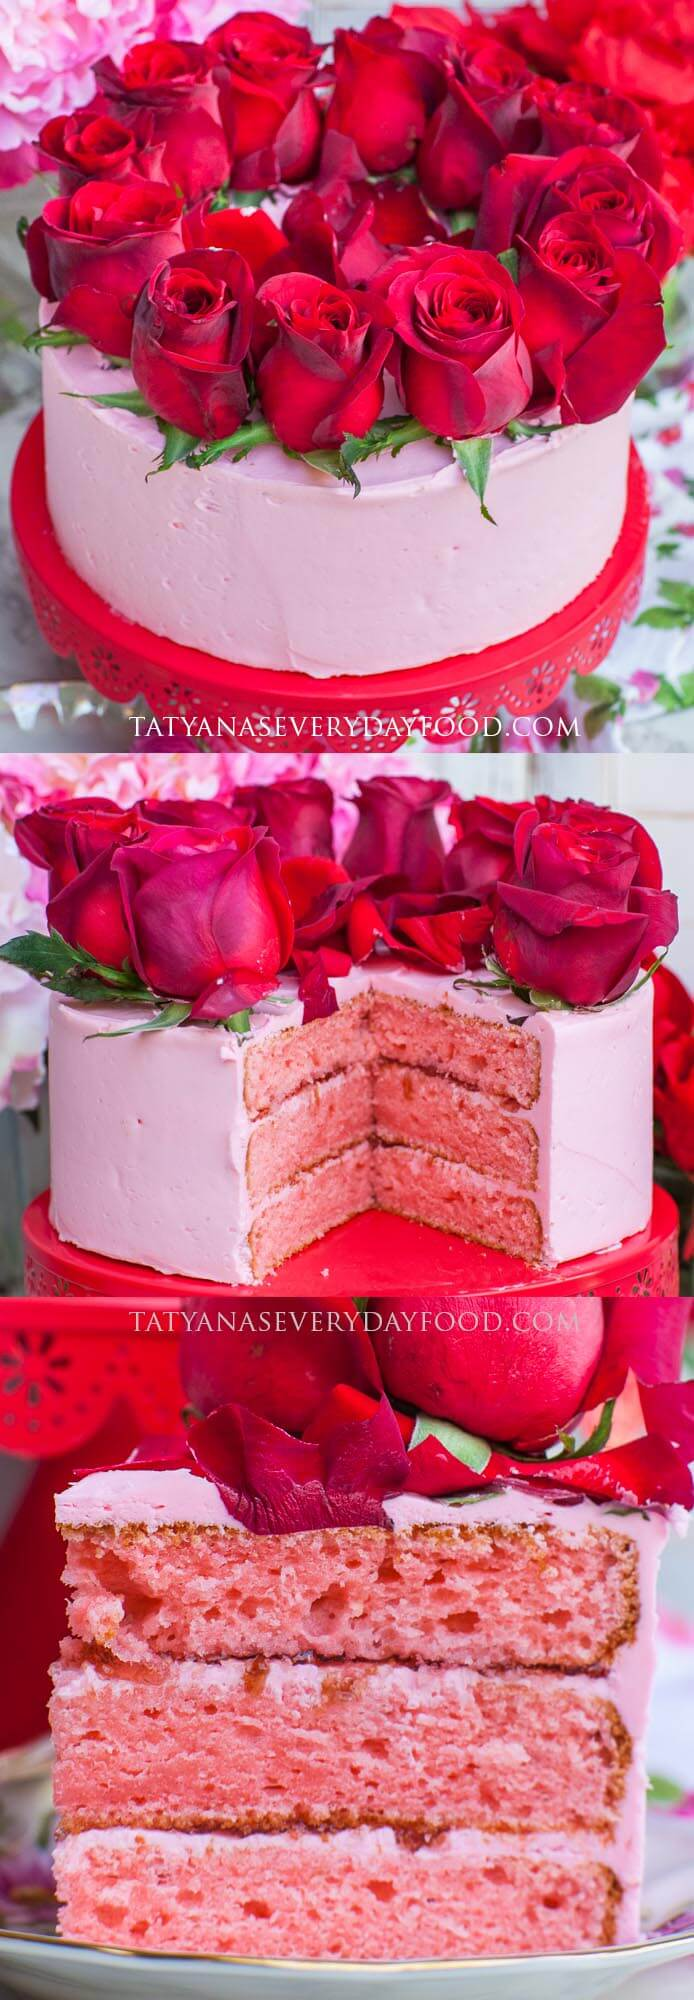 Rose Cake video recipe - Valentine's Day Cake